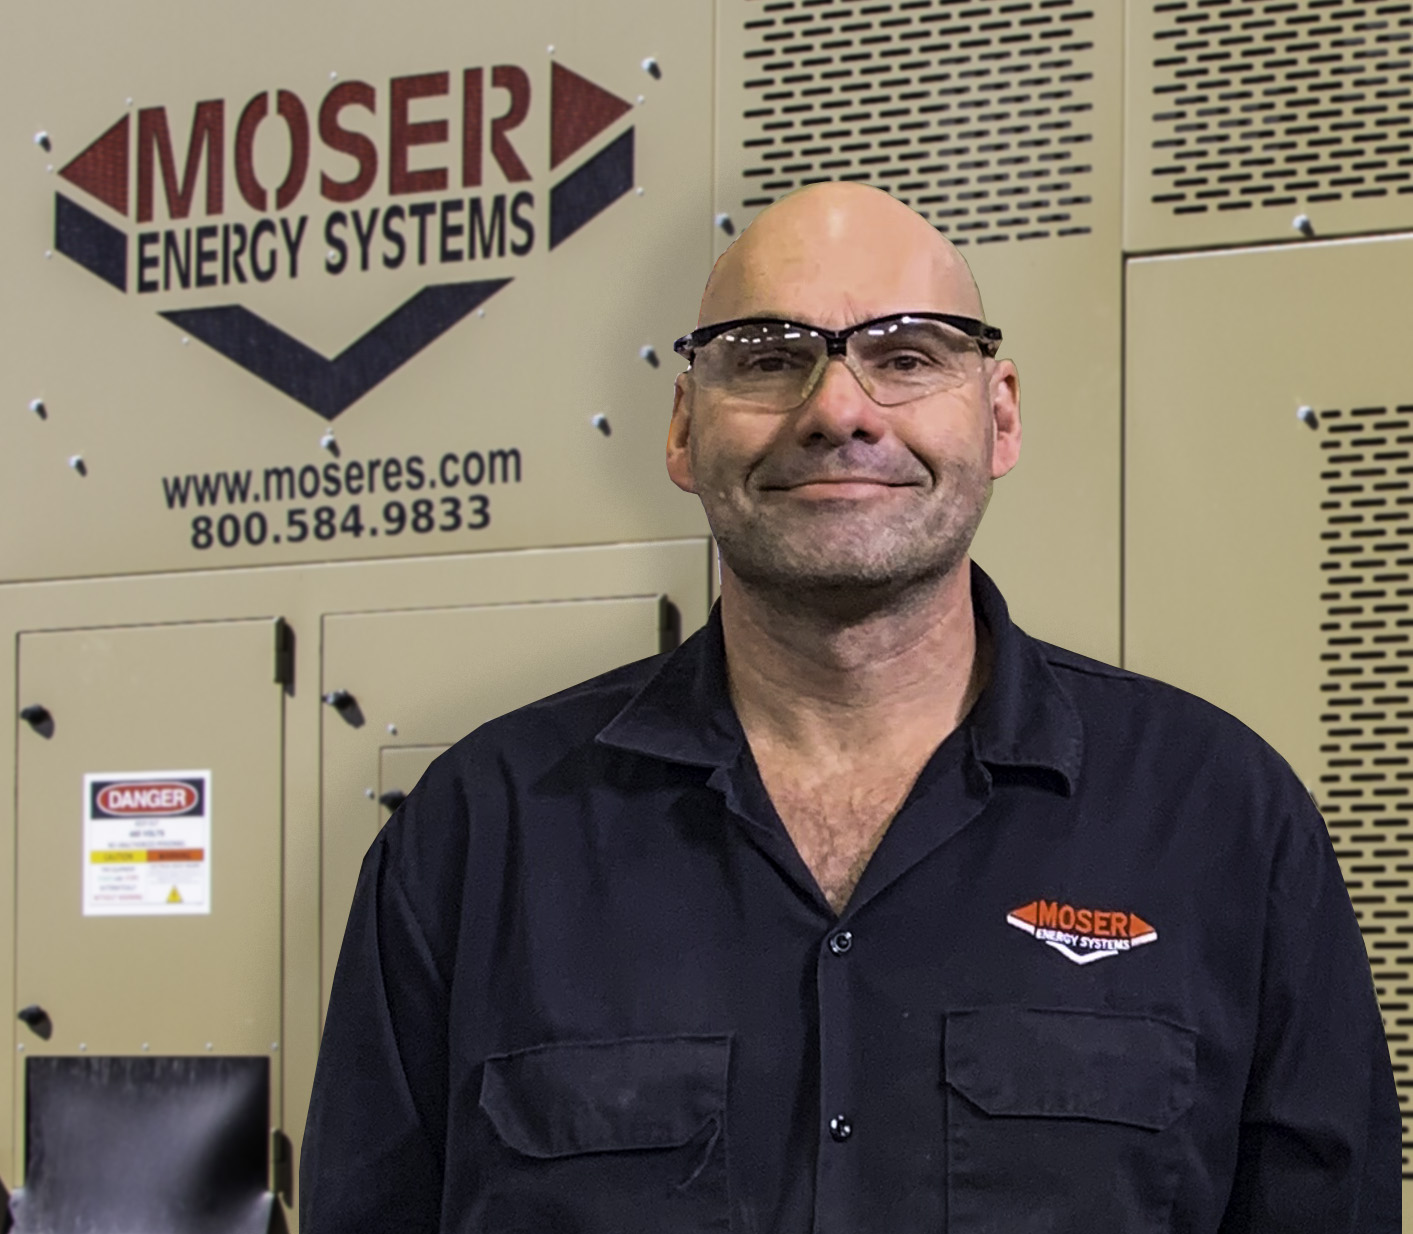 Moser Energy Systems Employee Spotlight: Michael Zedell